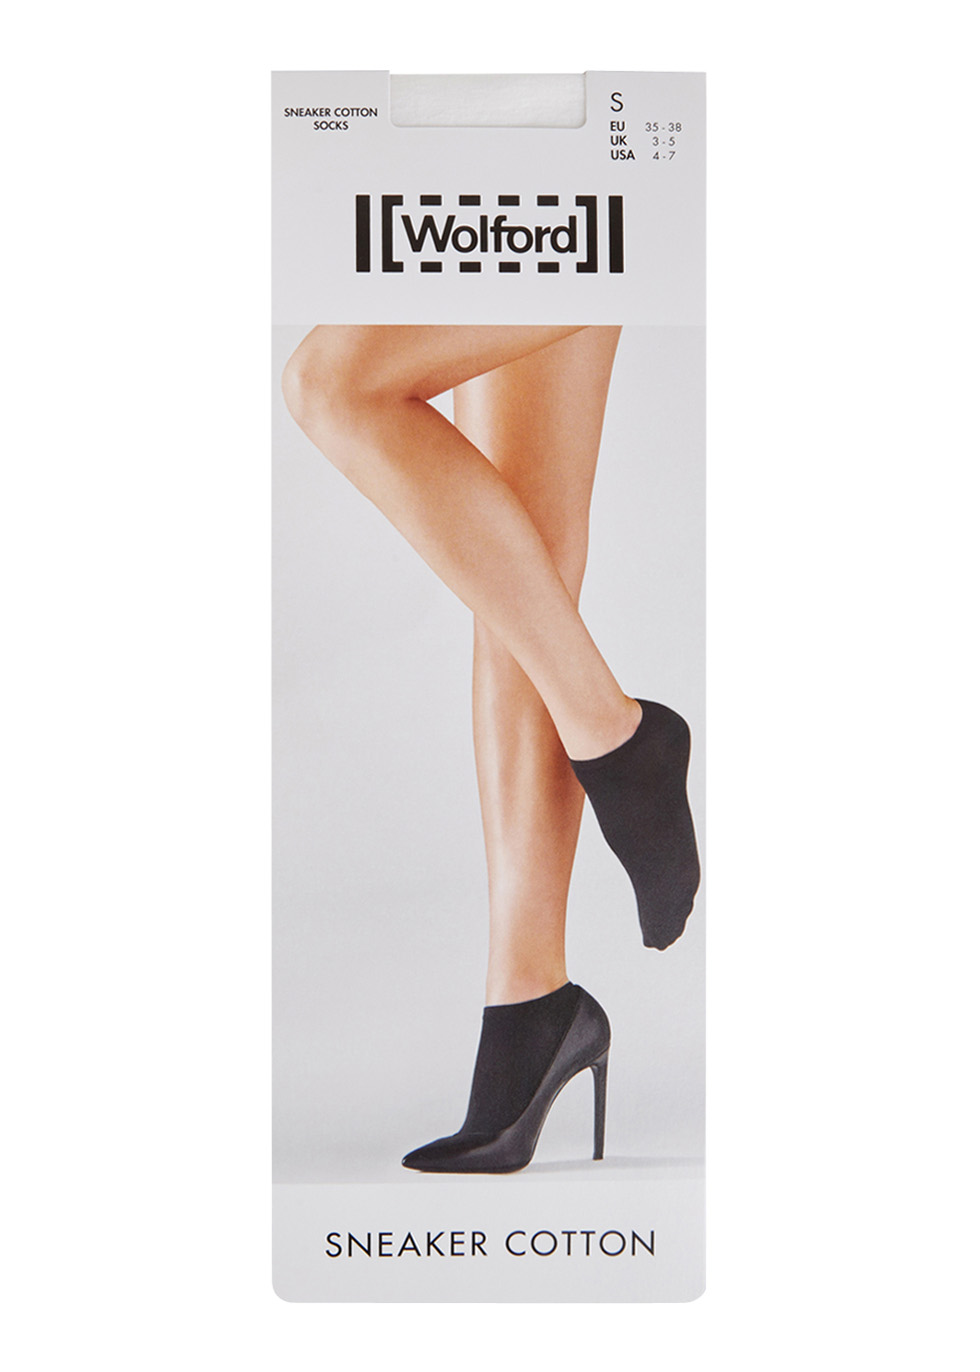 White low-cut cotton socks - Wolford